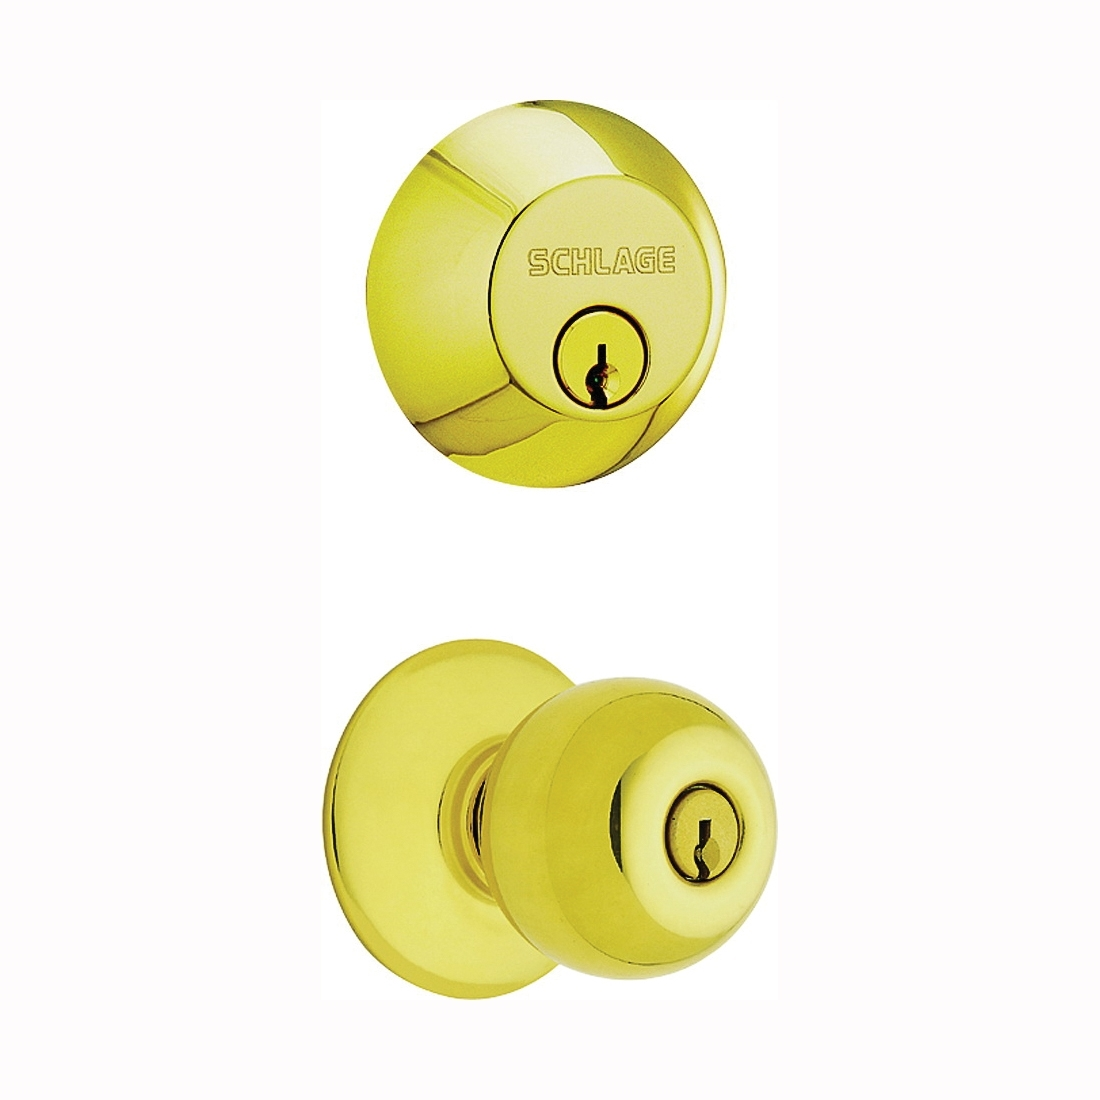 Picture of Schlage Plymouth FB50NVPLY505 Knob Lockset, 2 Grade, Keyed Alike Key, Steel, Brass, 2-3/8 x 2-3/4 in Backset